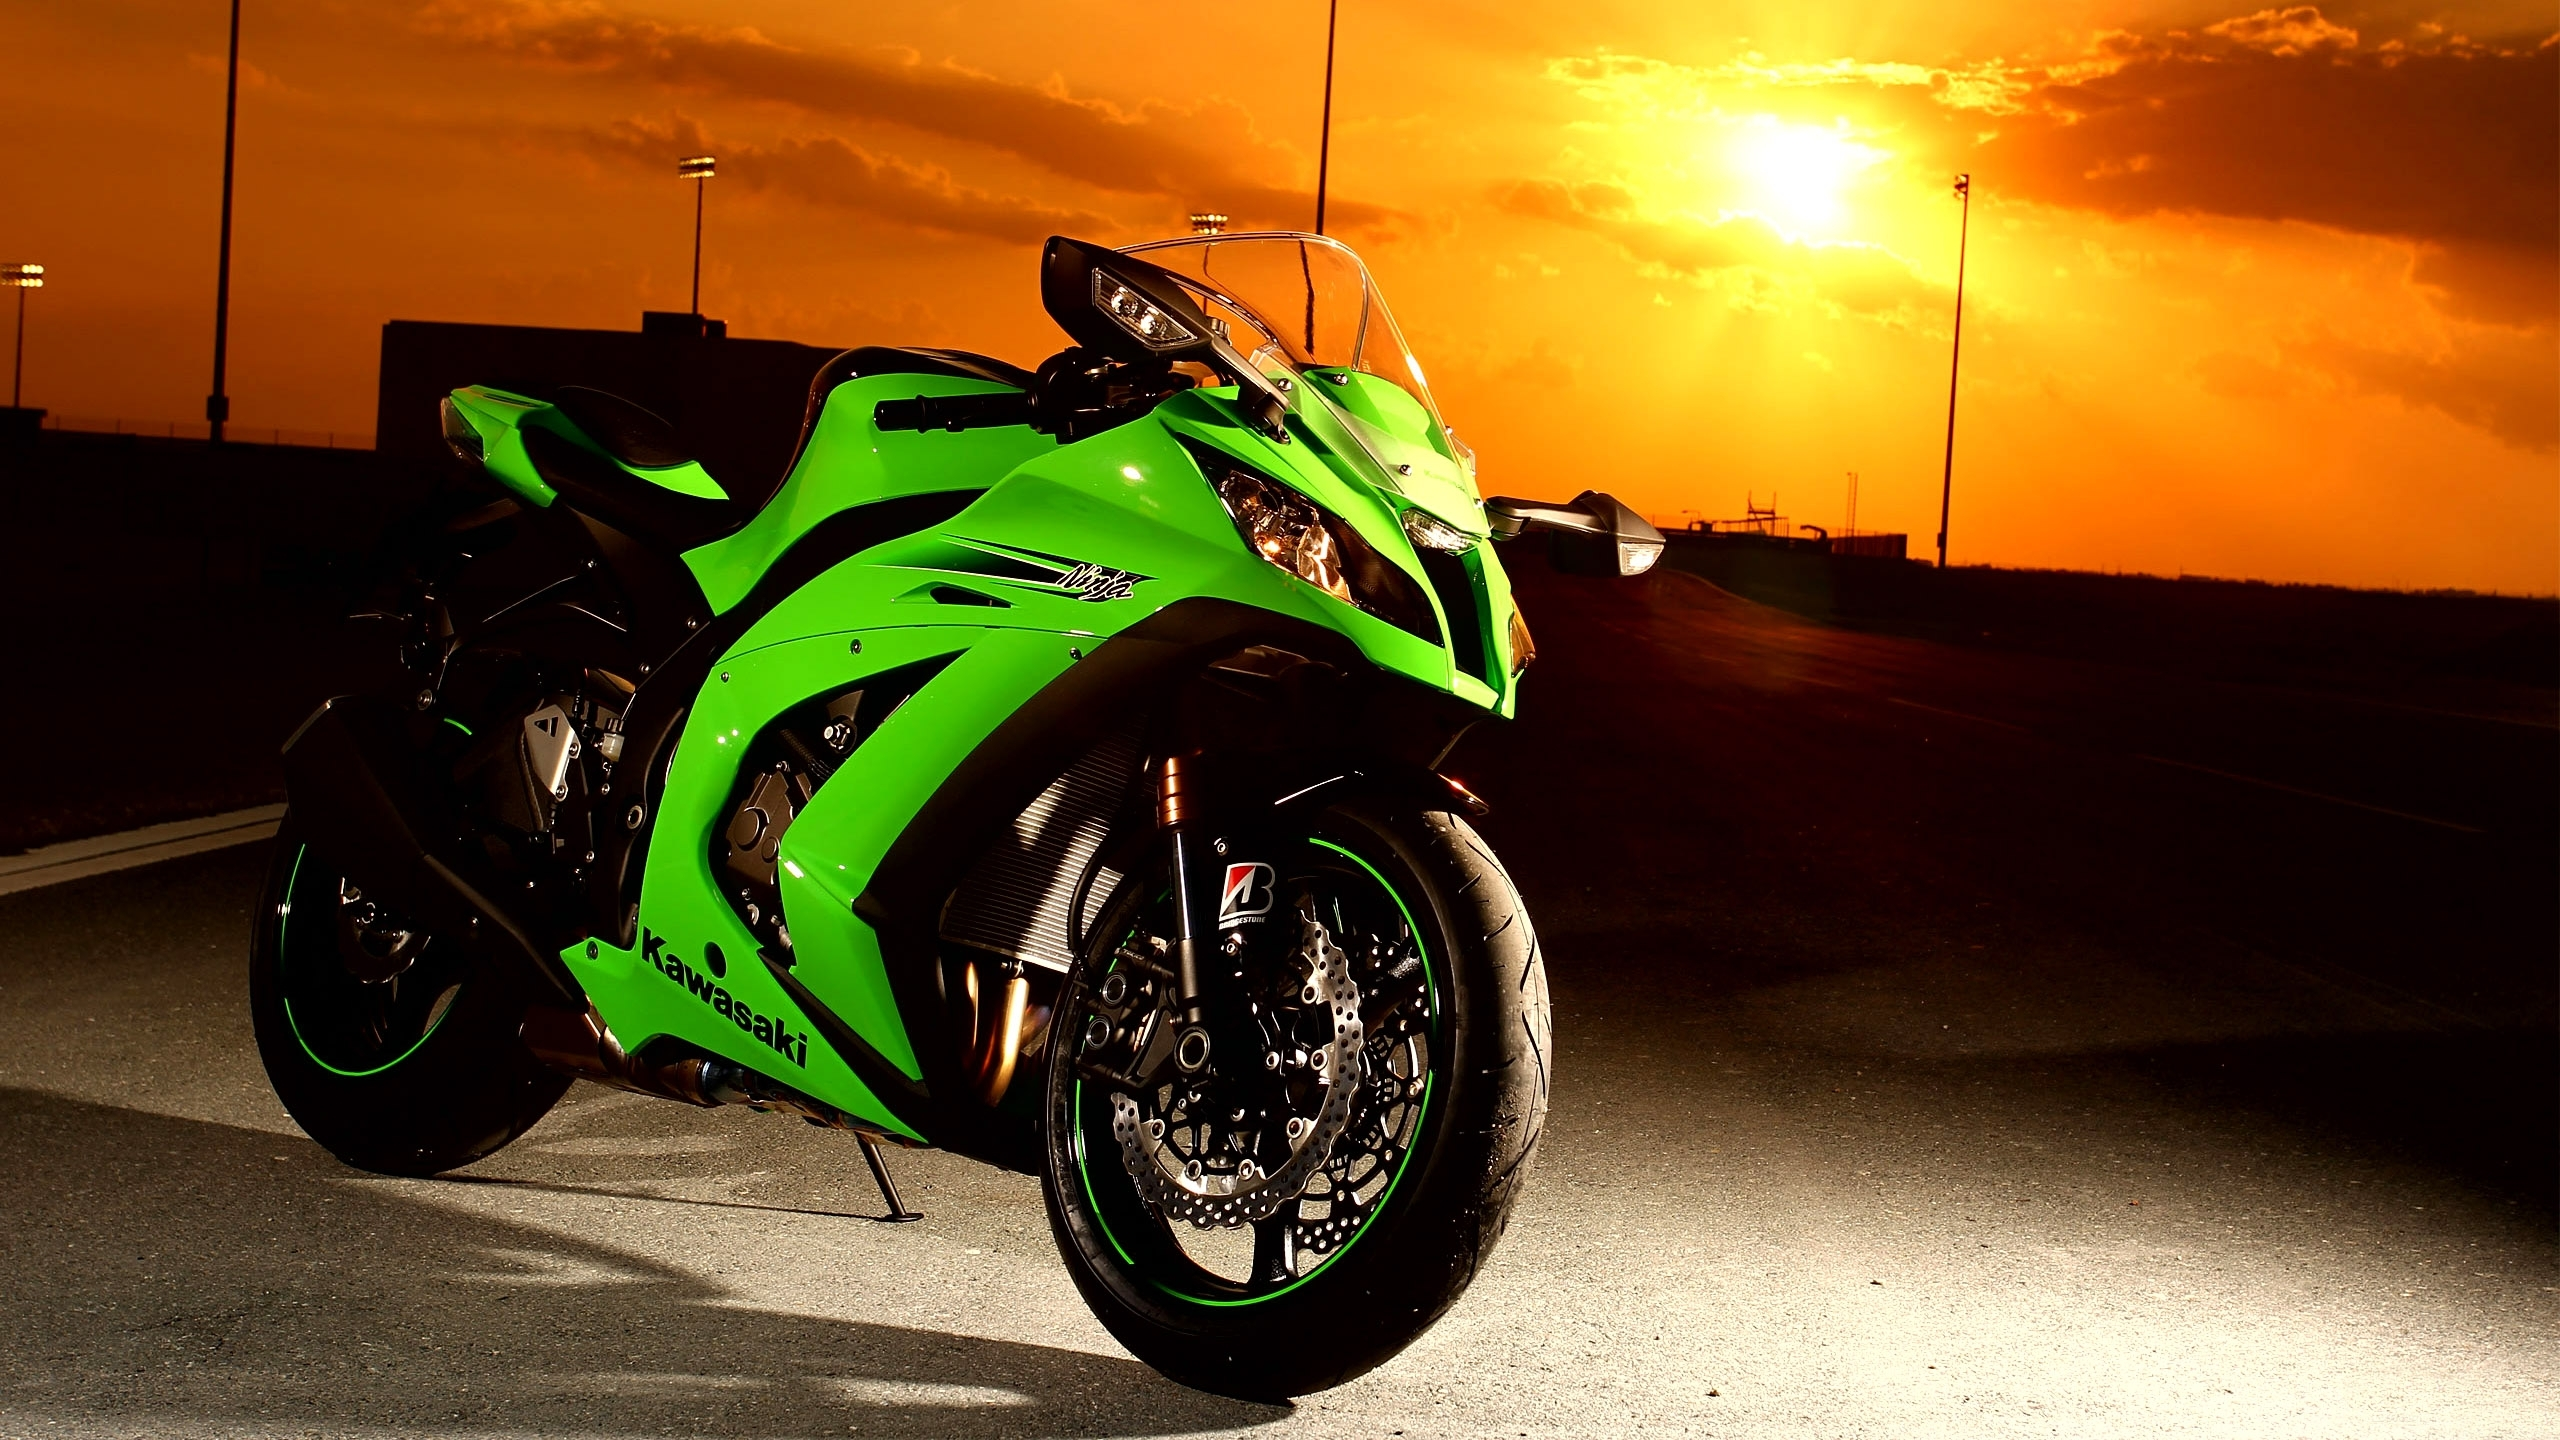 2560x1440 Kawasaki Ninja 1440P Resolution HD 4k Wallpapers Images